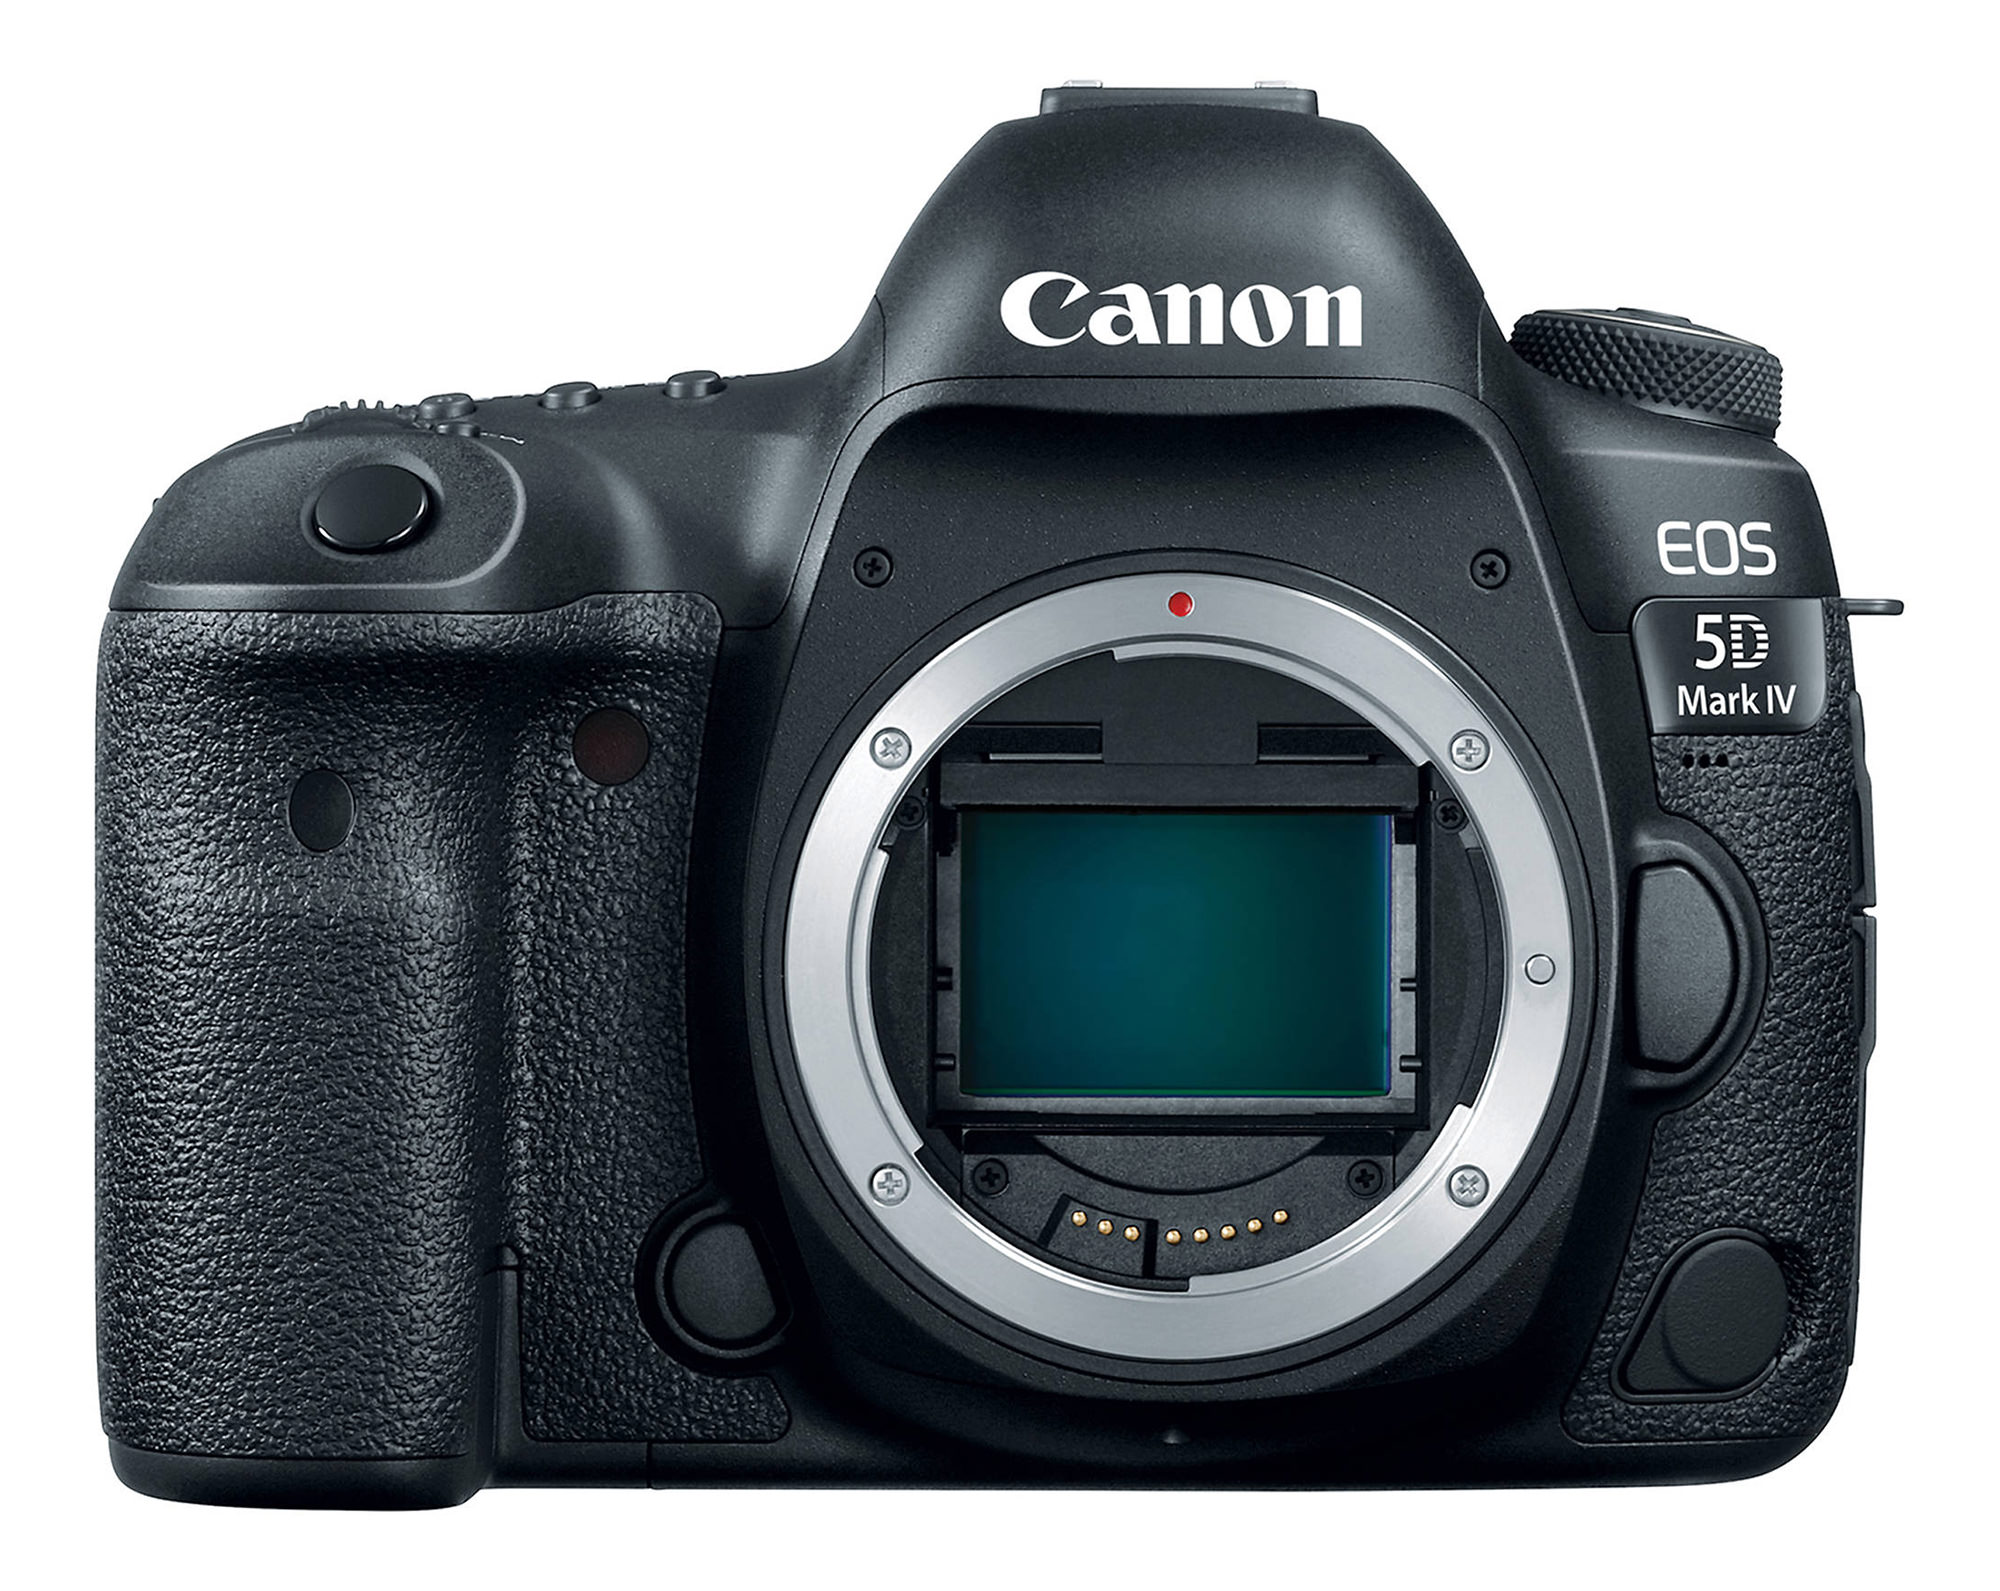 Recommended Canon 5d Mark Iv Settings